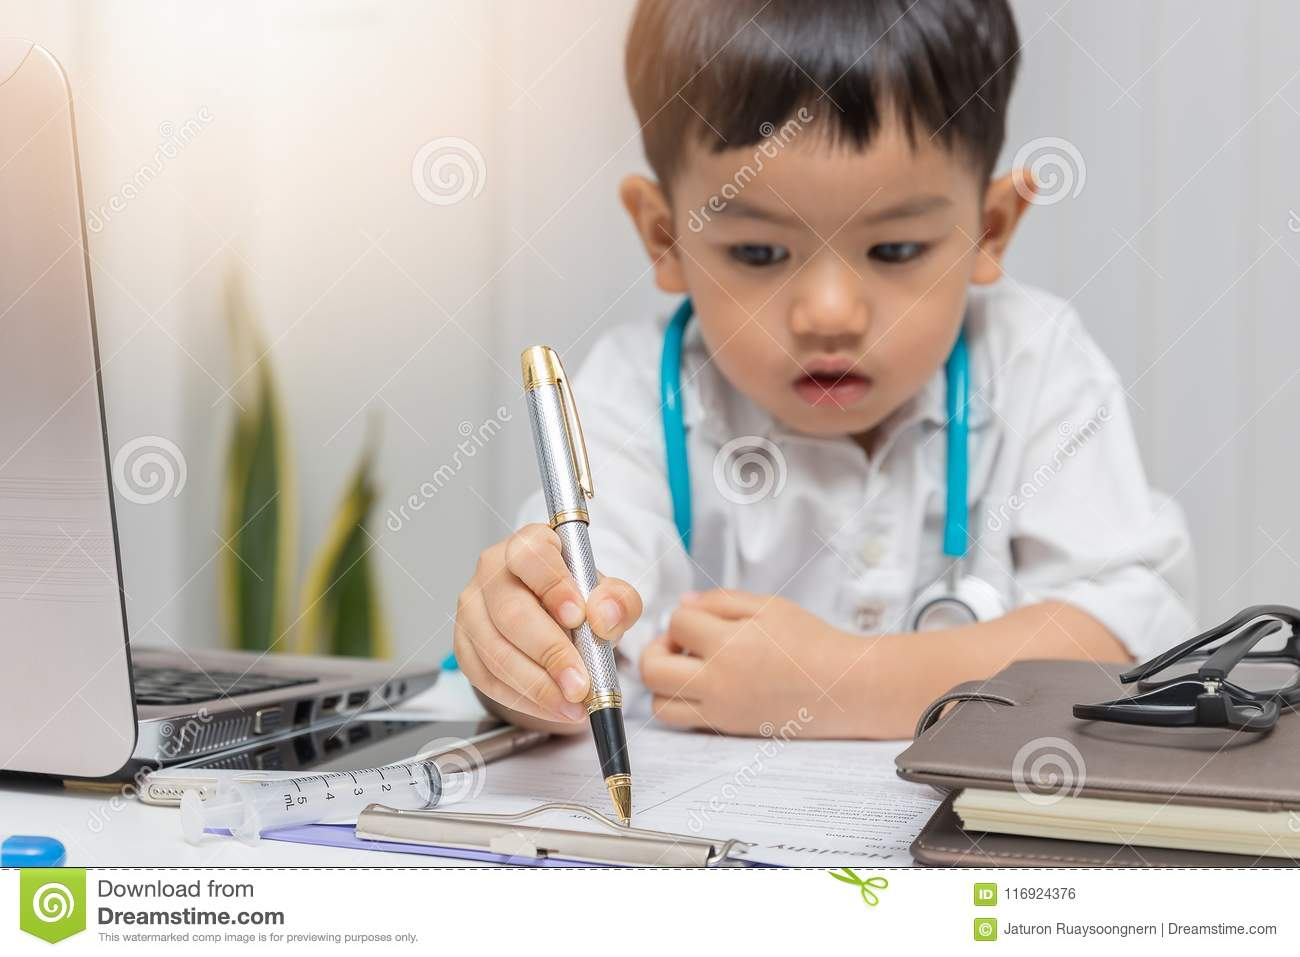 Young asian boy playing doctor and writing on diagnostic chart